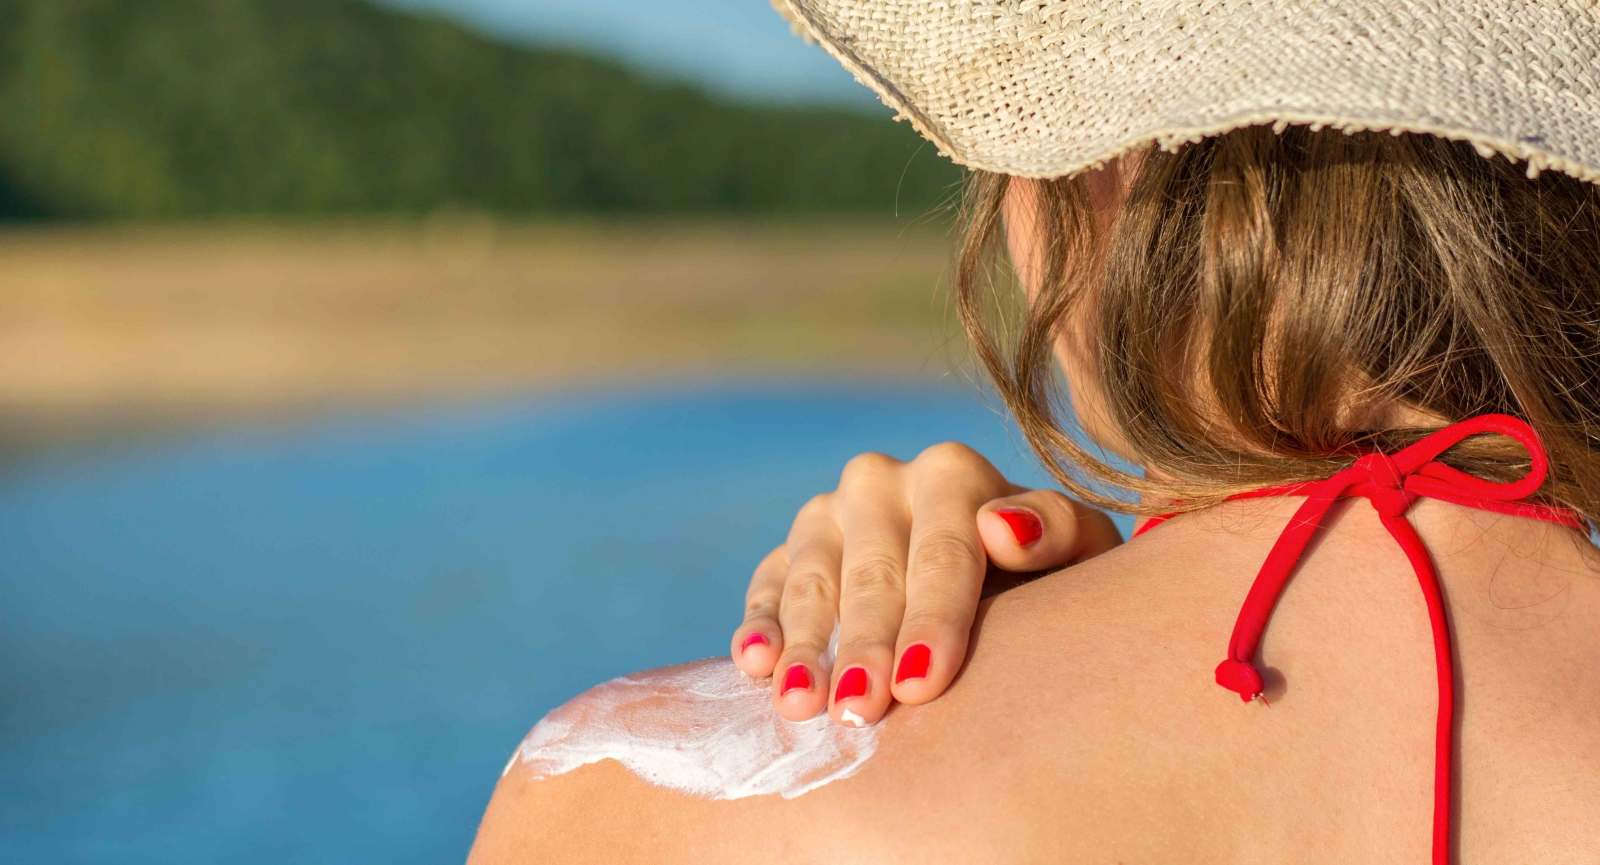 Photo by creativefamily/Fotolia. A woman putting sunscreen on her shoulder on the beach.